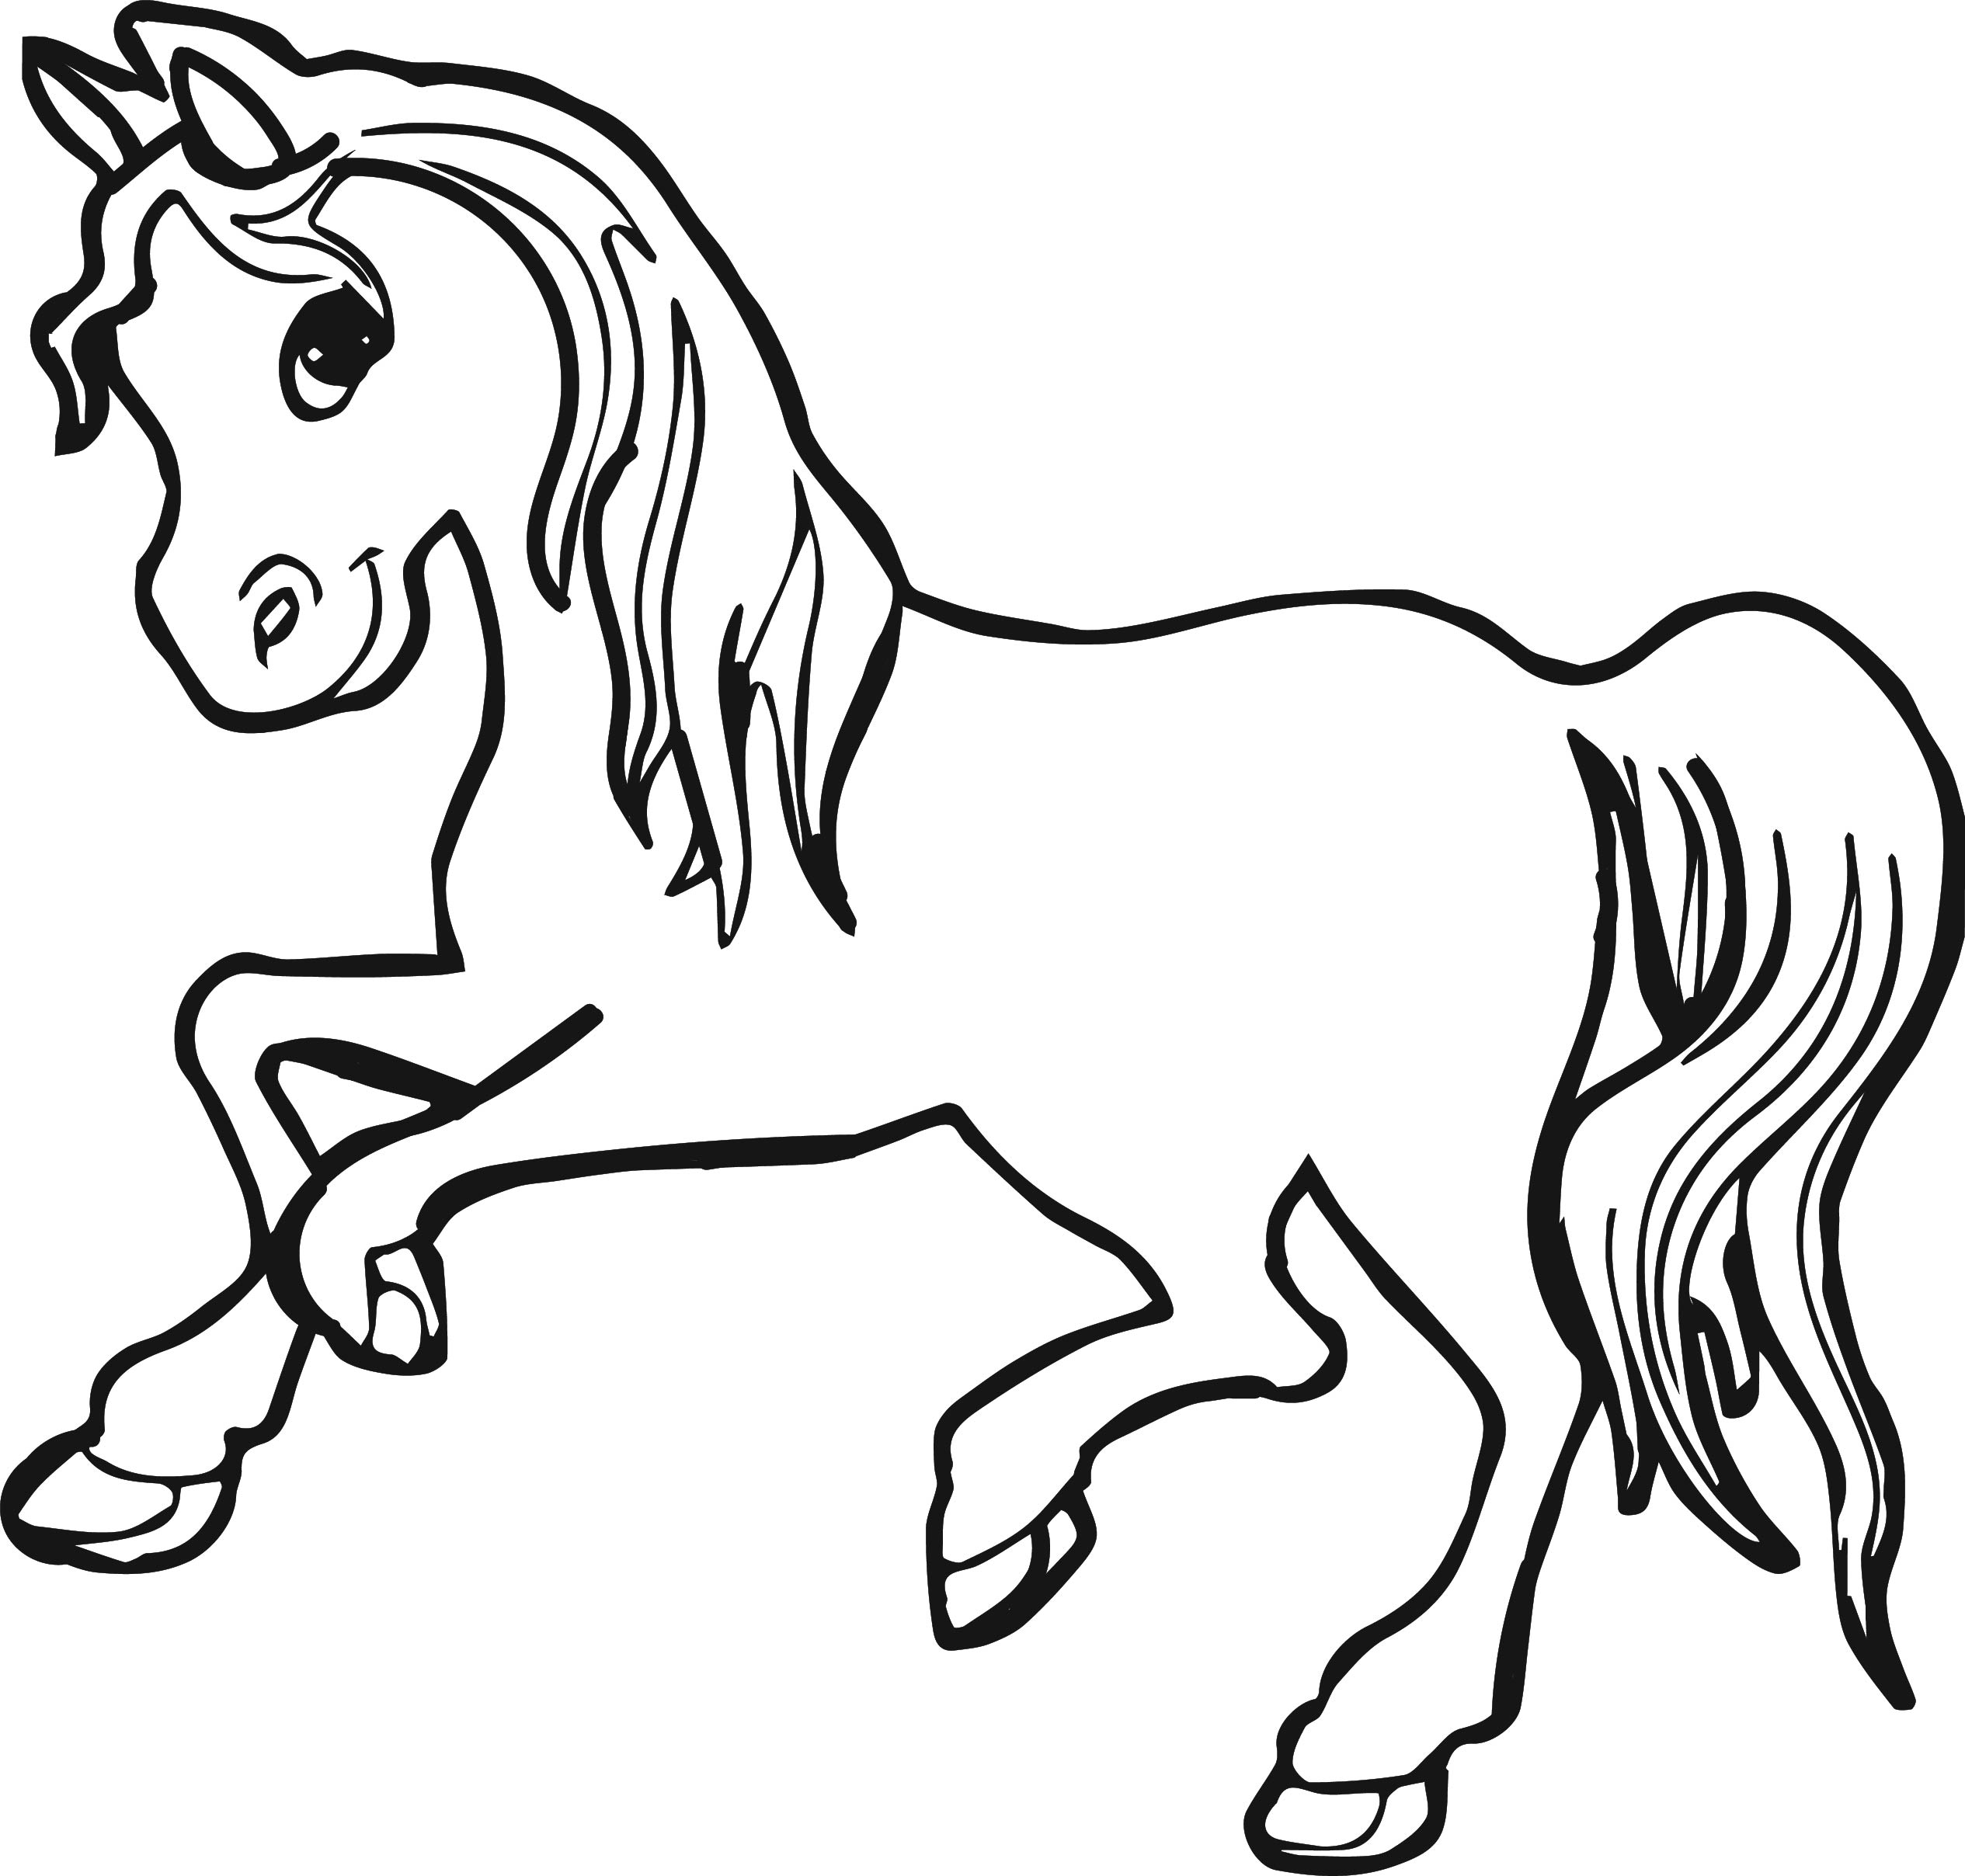 Horse Coloring Page Magnificent Horse Coloring Pages  Wecoloringpage Design Ideas